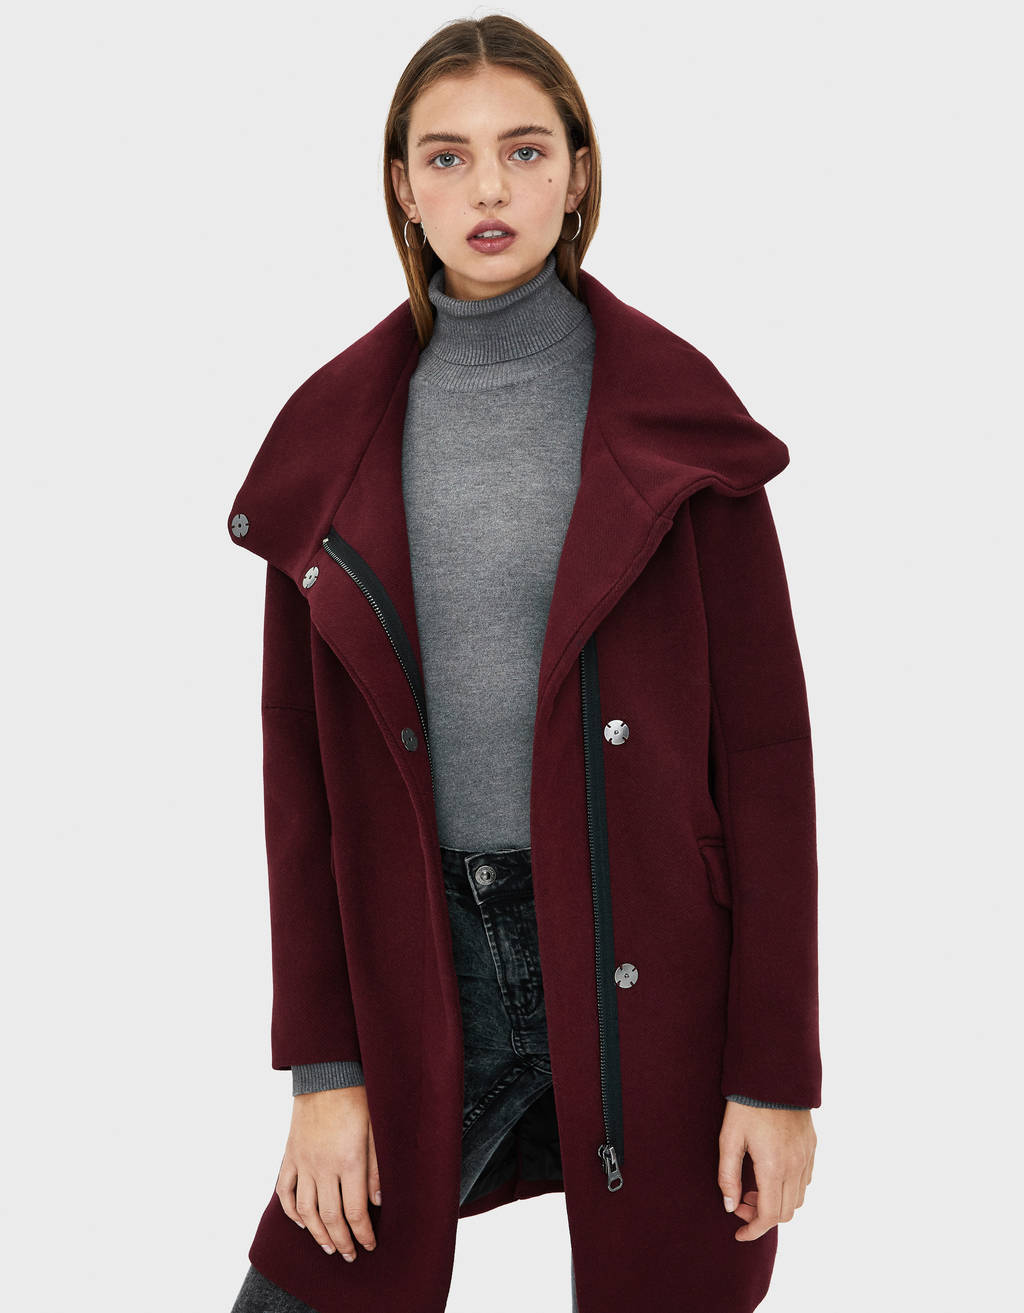 Wool coat with a funnel collar